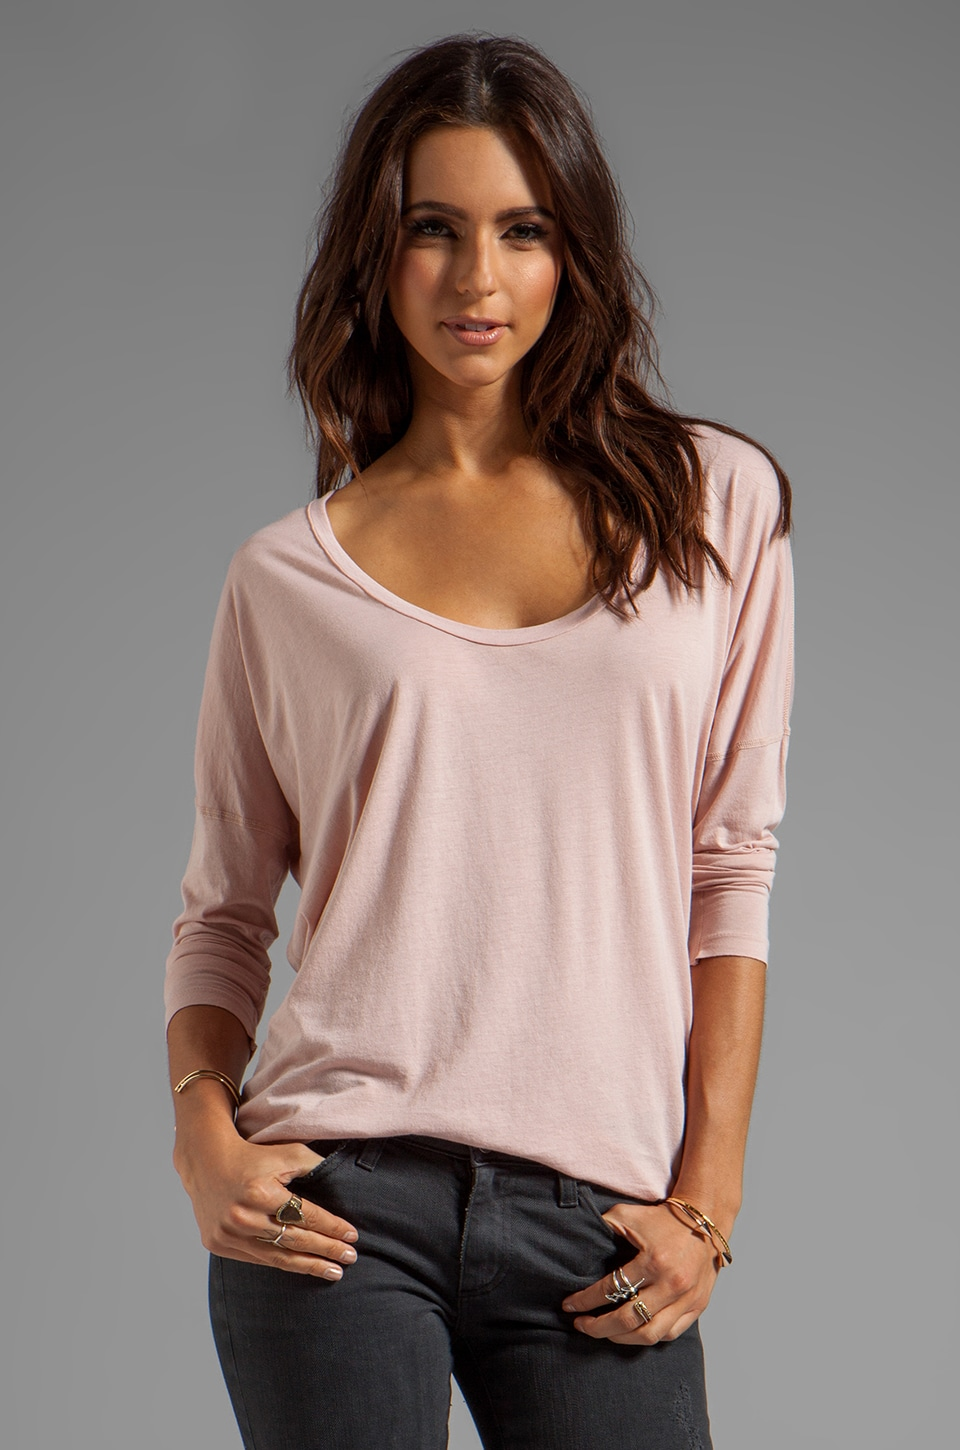 AG Adriano Goldschmied Boxy Scoop Tee in Naked